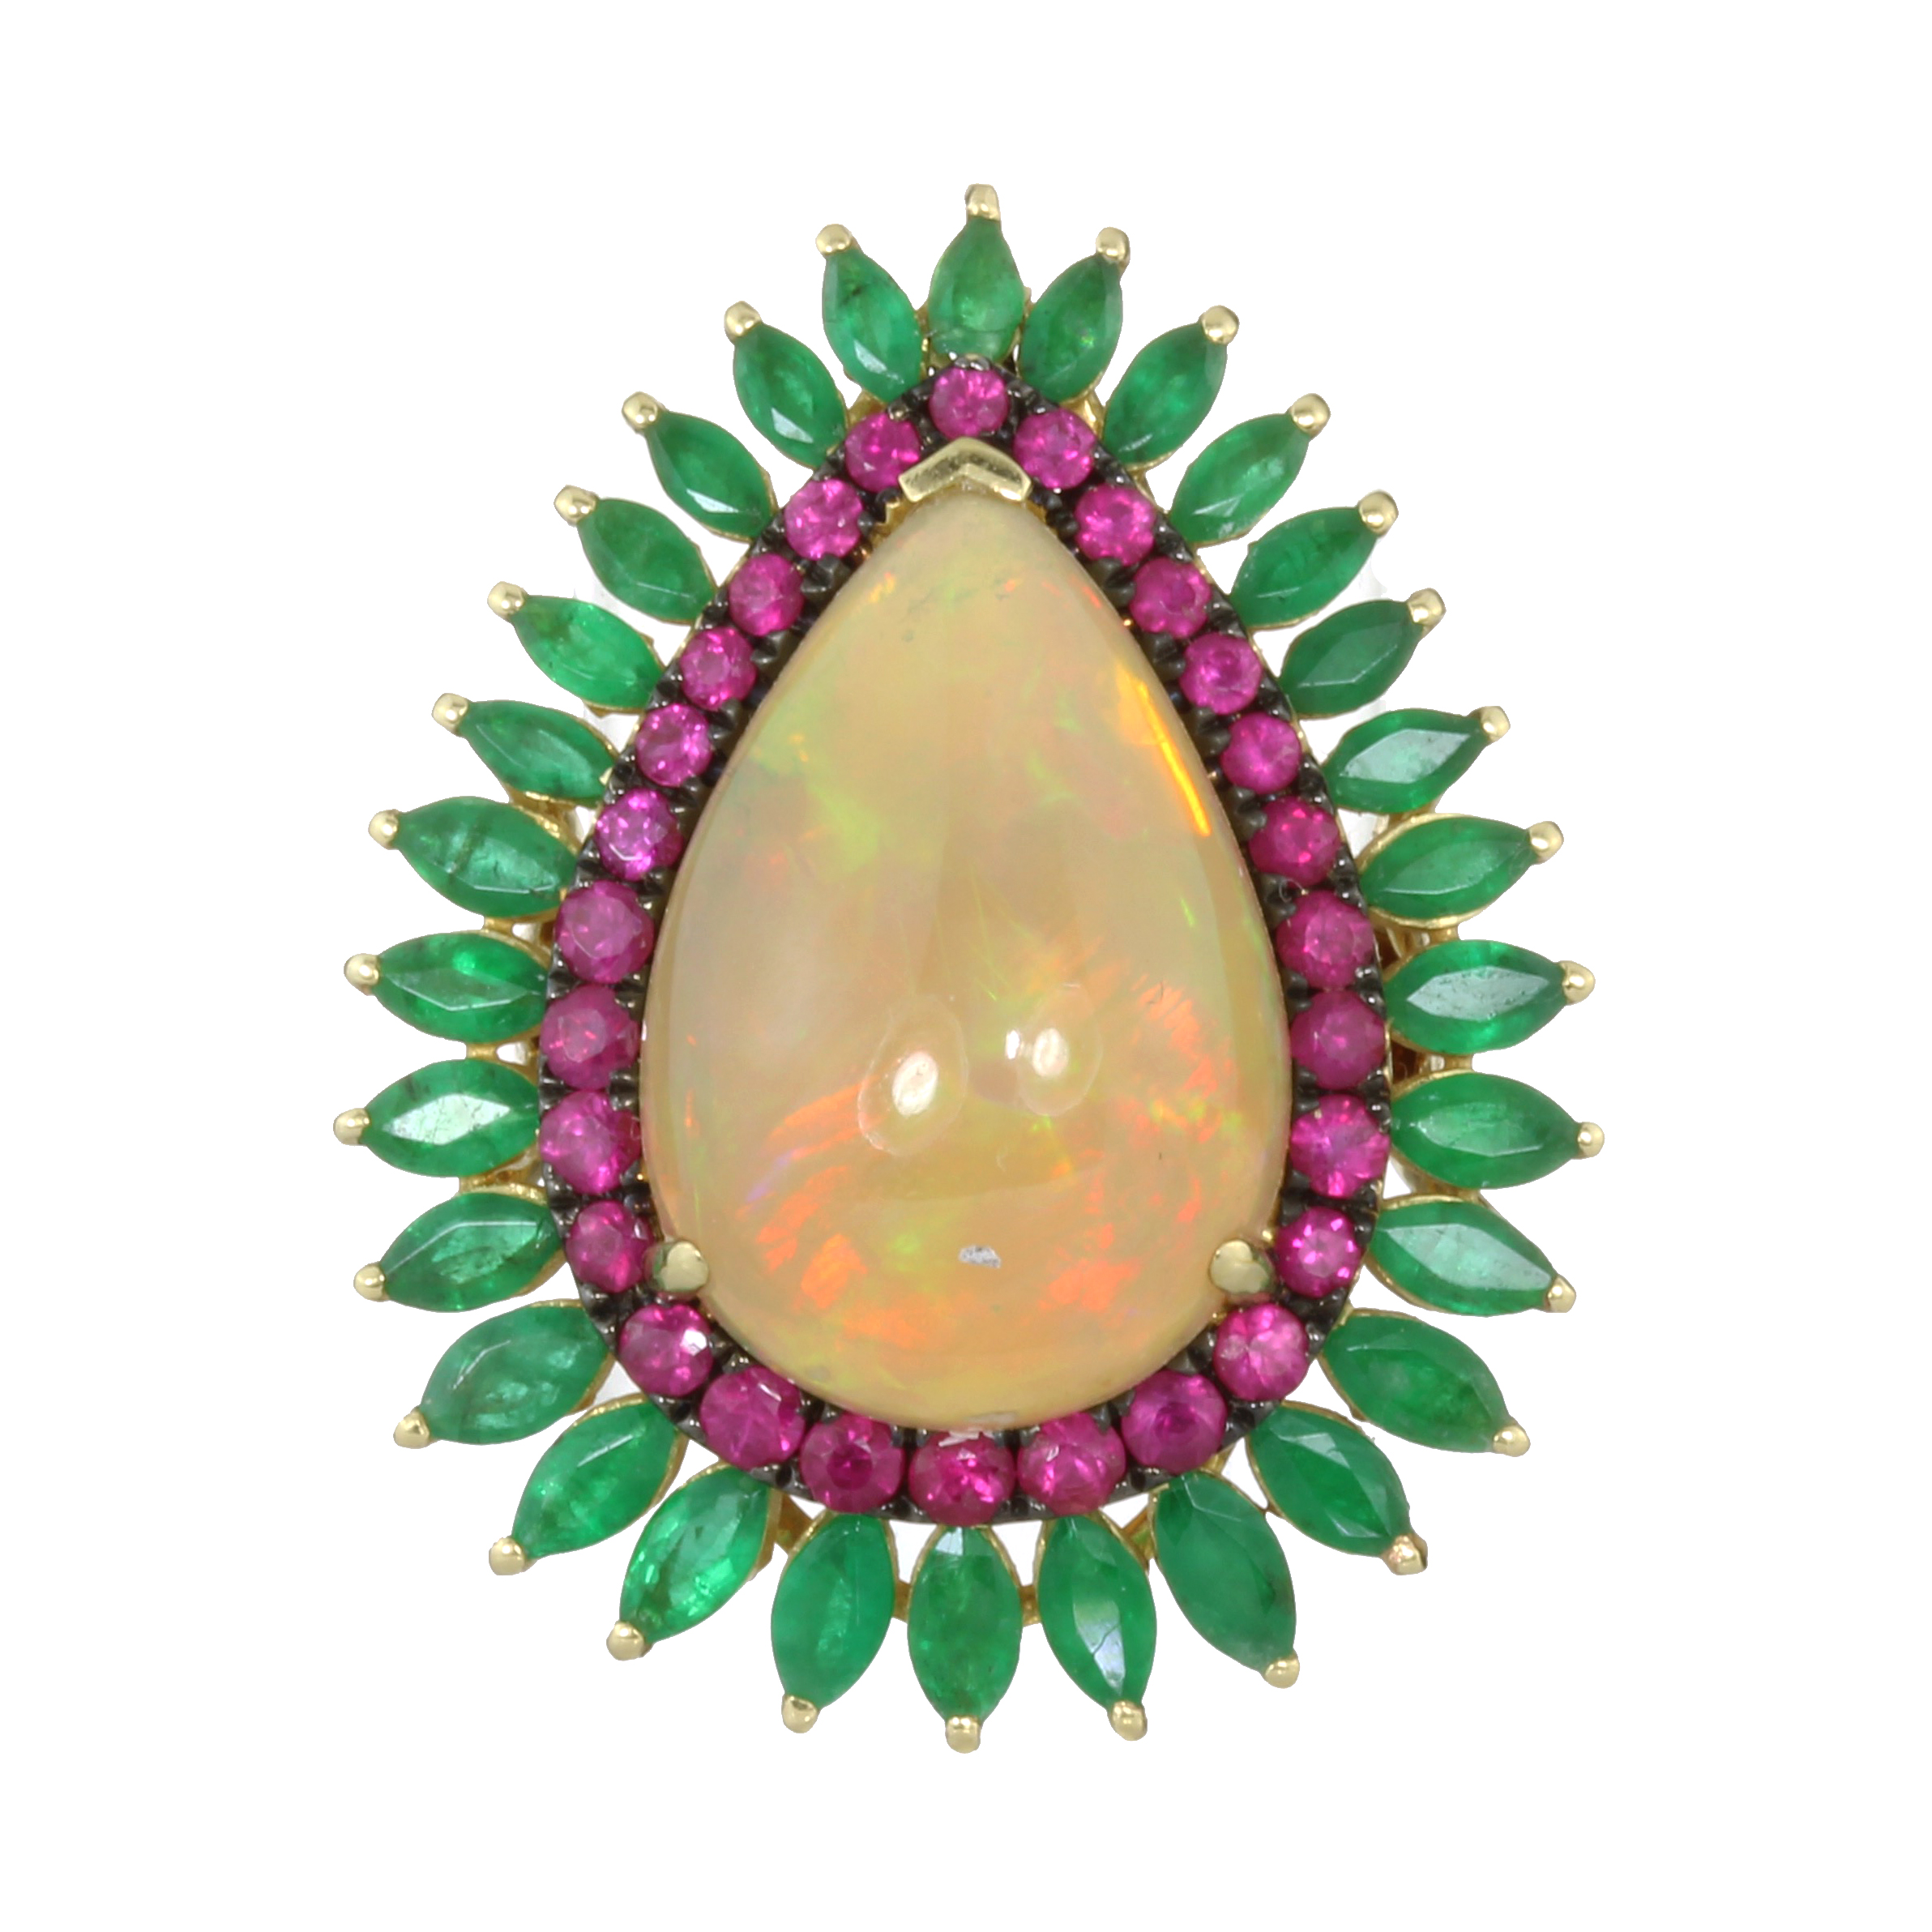 AN ETHIOPIAN OPAL, RUBY AND EMERALD COCKTAIL RING in 18ct yellow gold set with a large, central pear